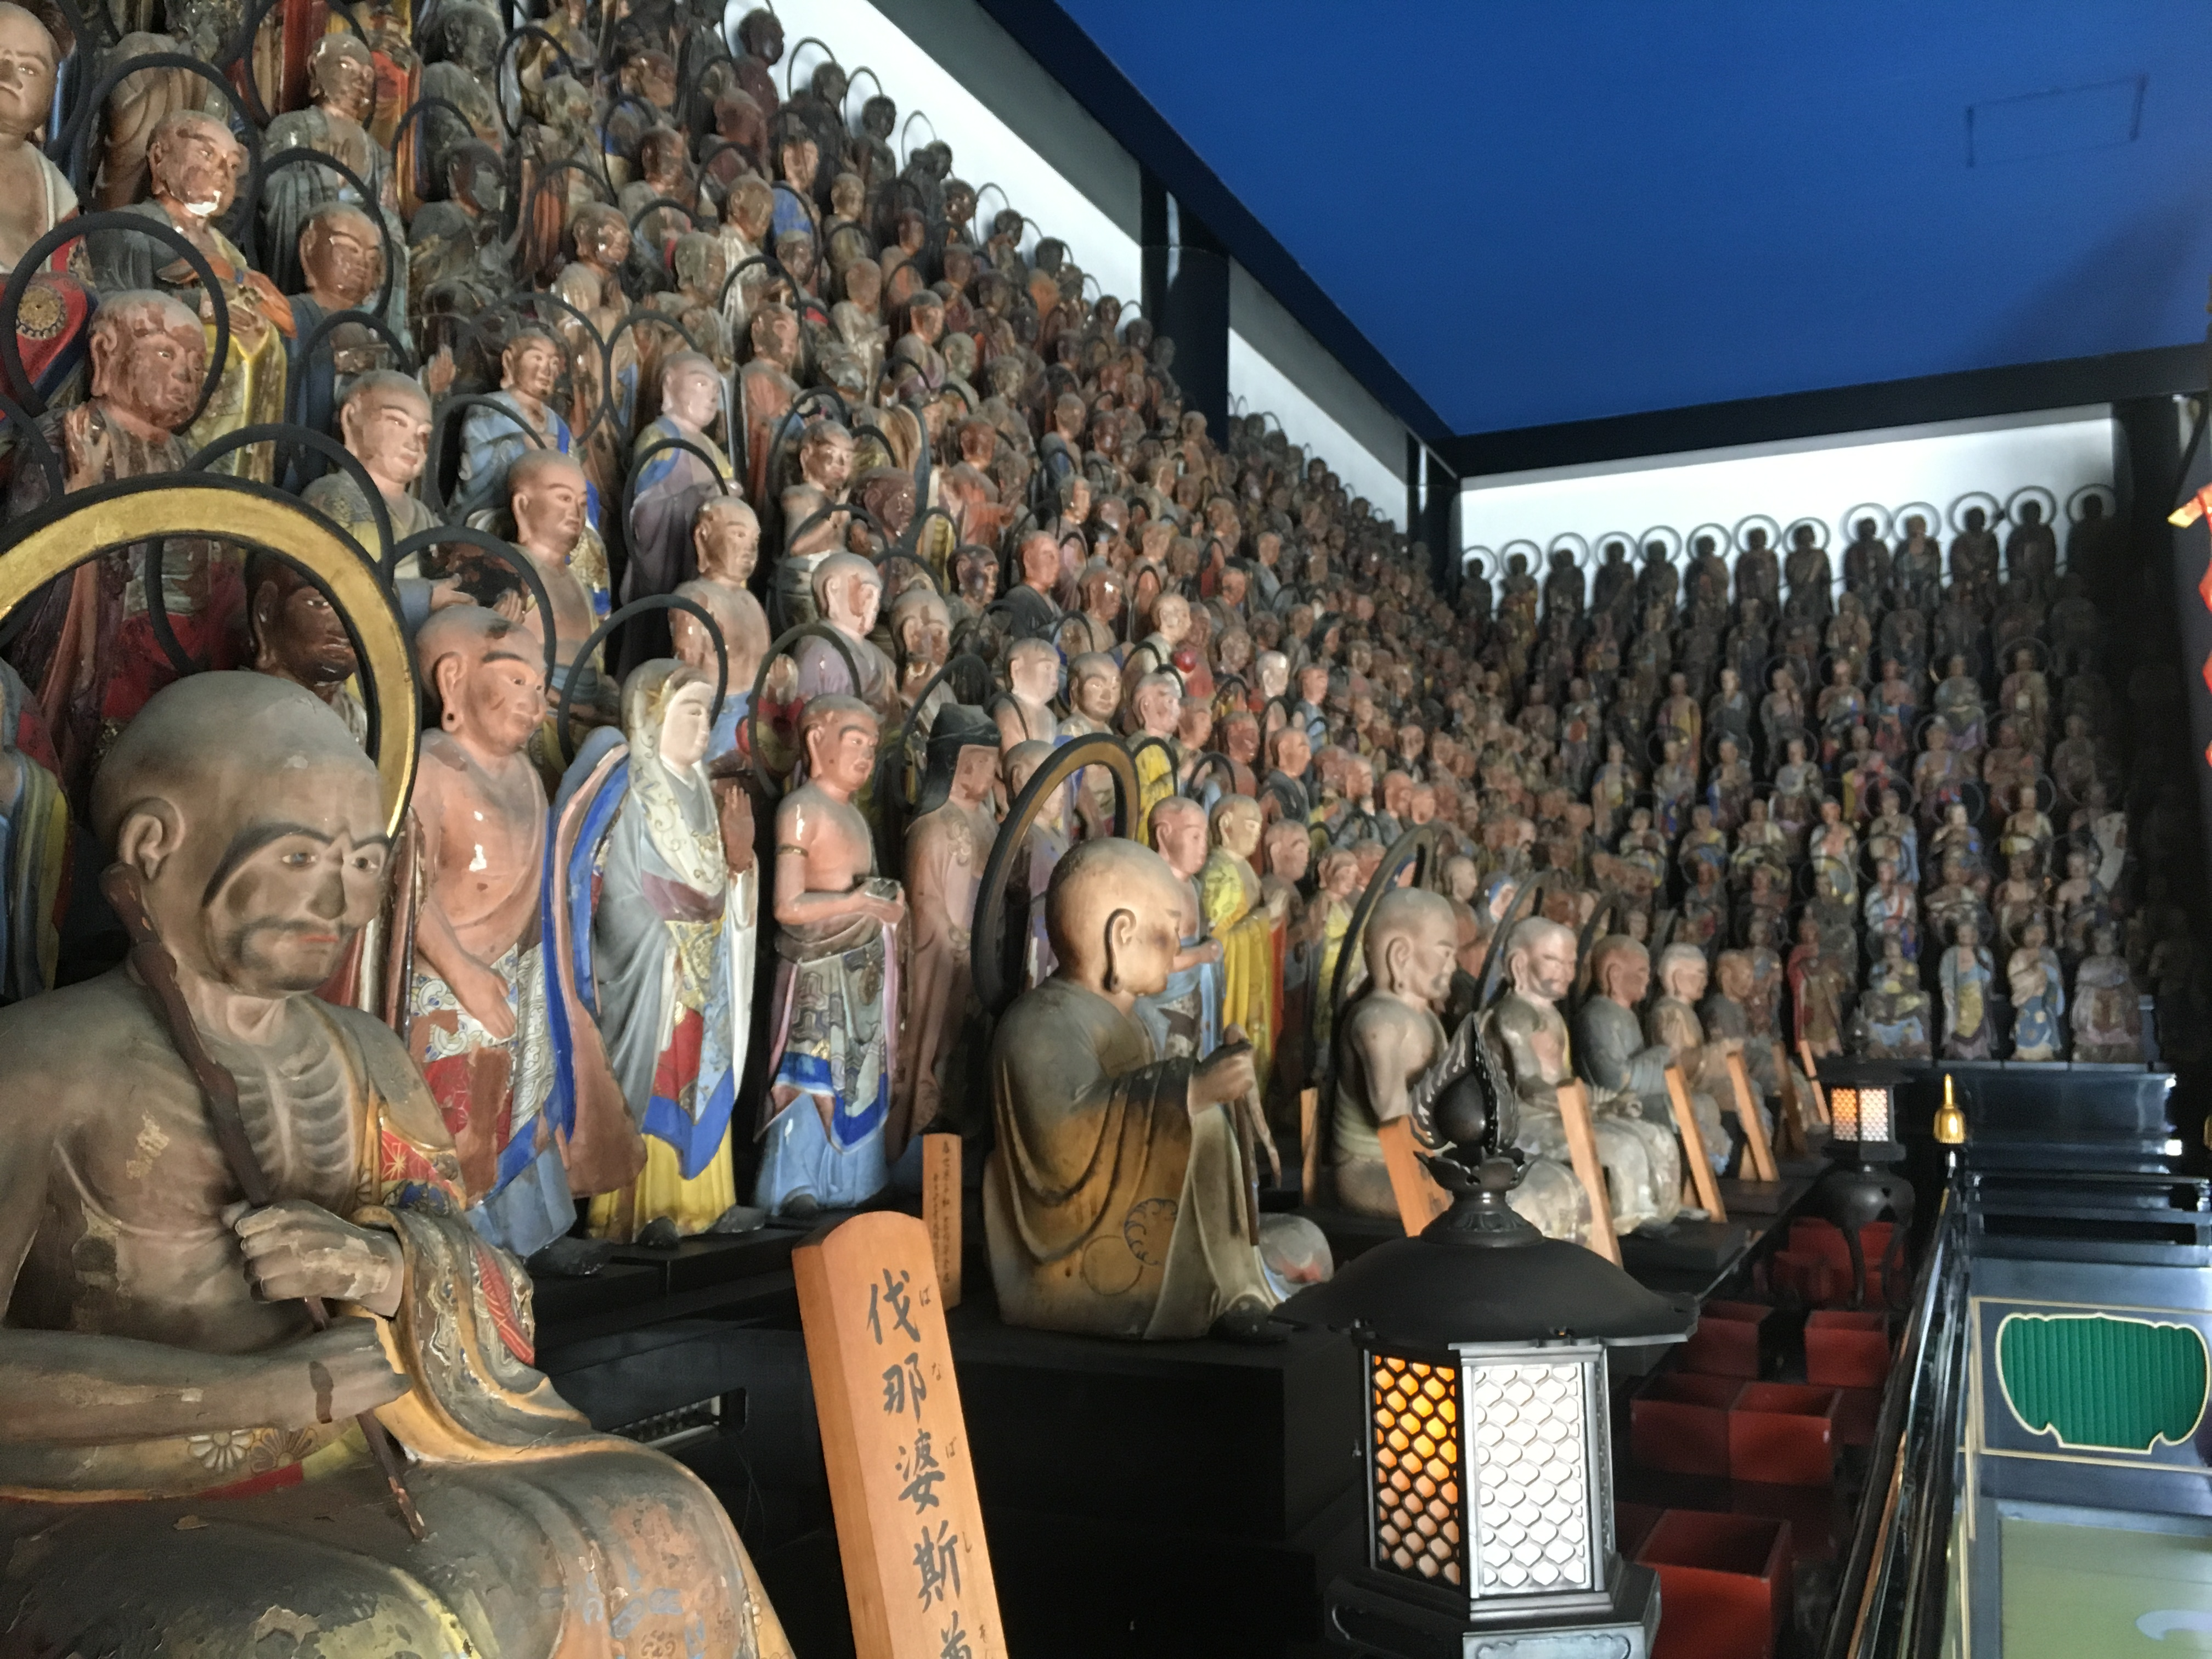 rows of old statues of Buddhist priest and practitioners